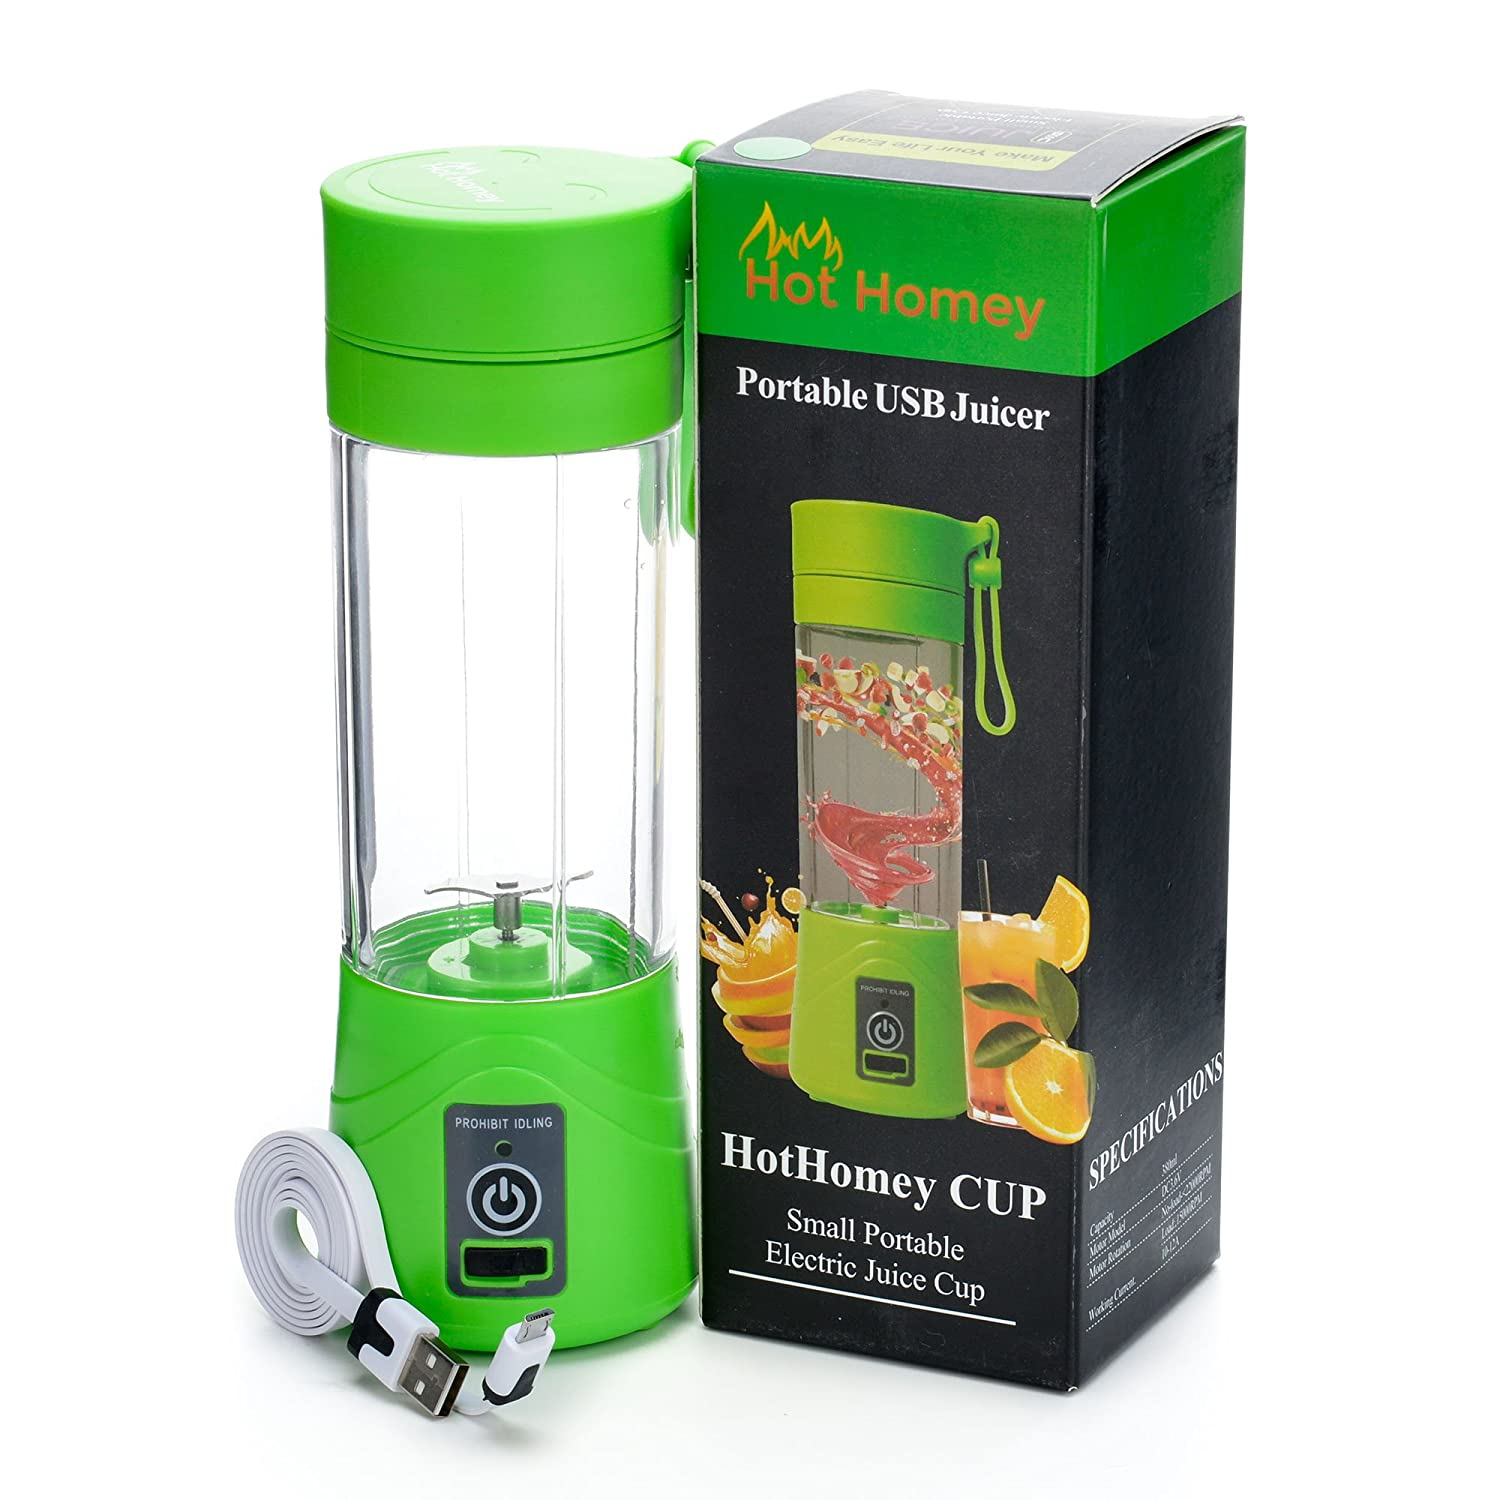 Hot Homey Portable Rechargeable USB Juicer Cup - 380ml Electric Personal Blender - Fruit Mixer - Protein Shaker - Protein Mixer with USB Charger Cable - Perfect for Home & Office Benols Enterprise HHUSBB-GRN01